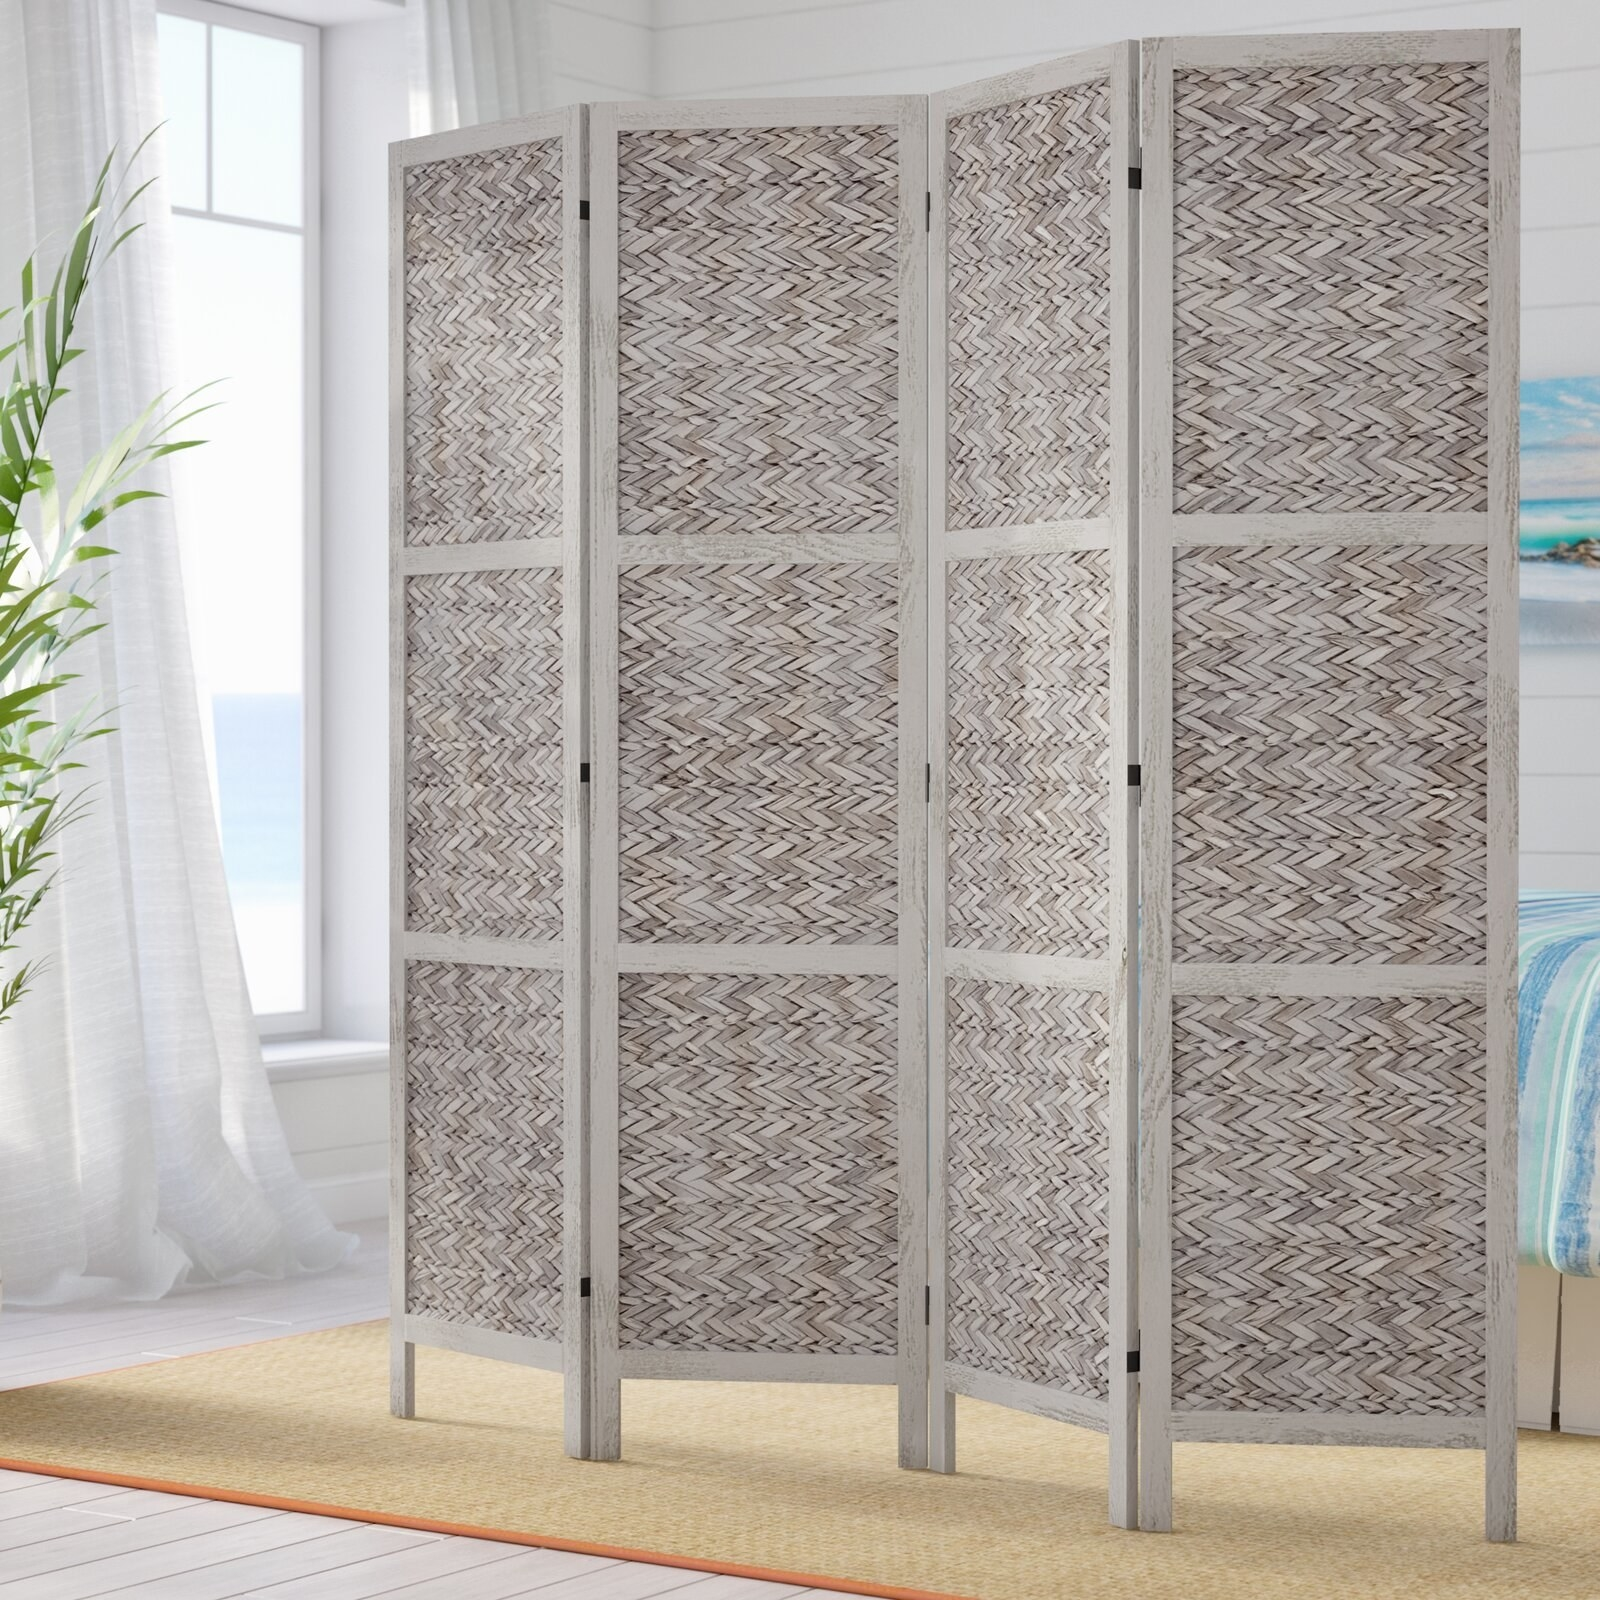 The gray room divider panel